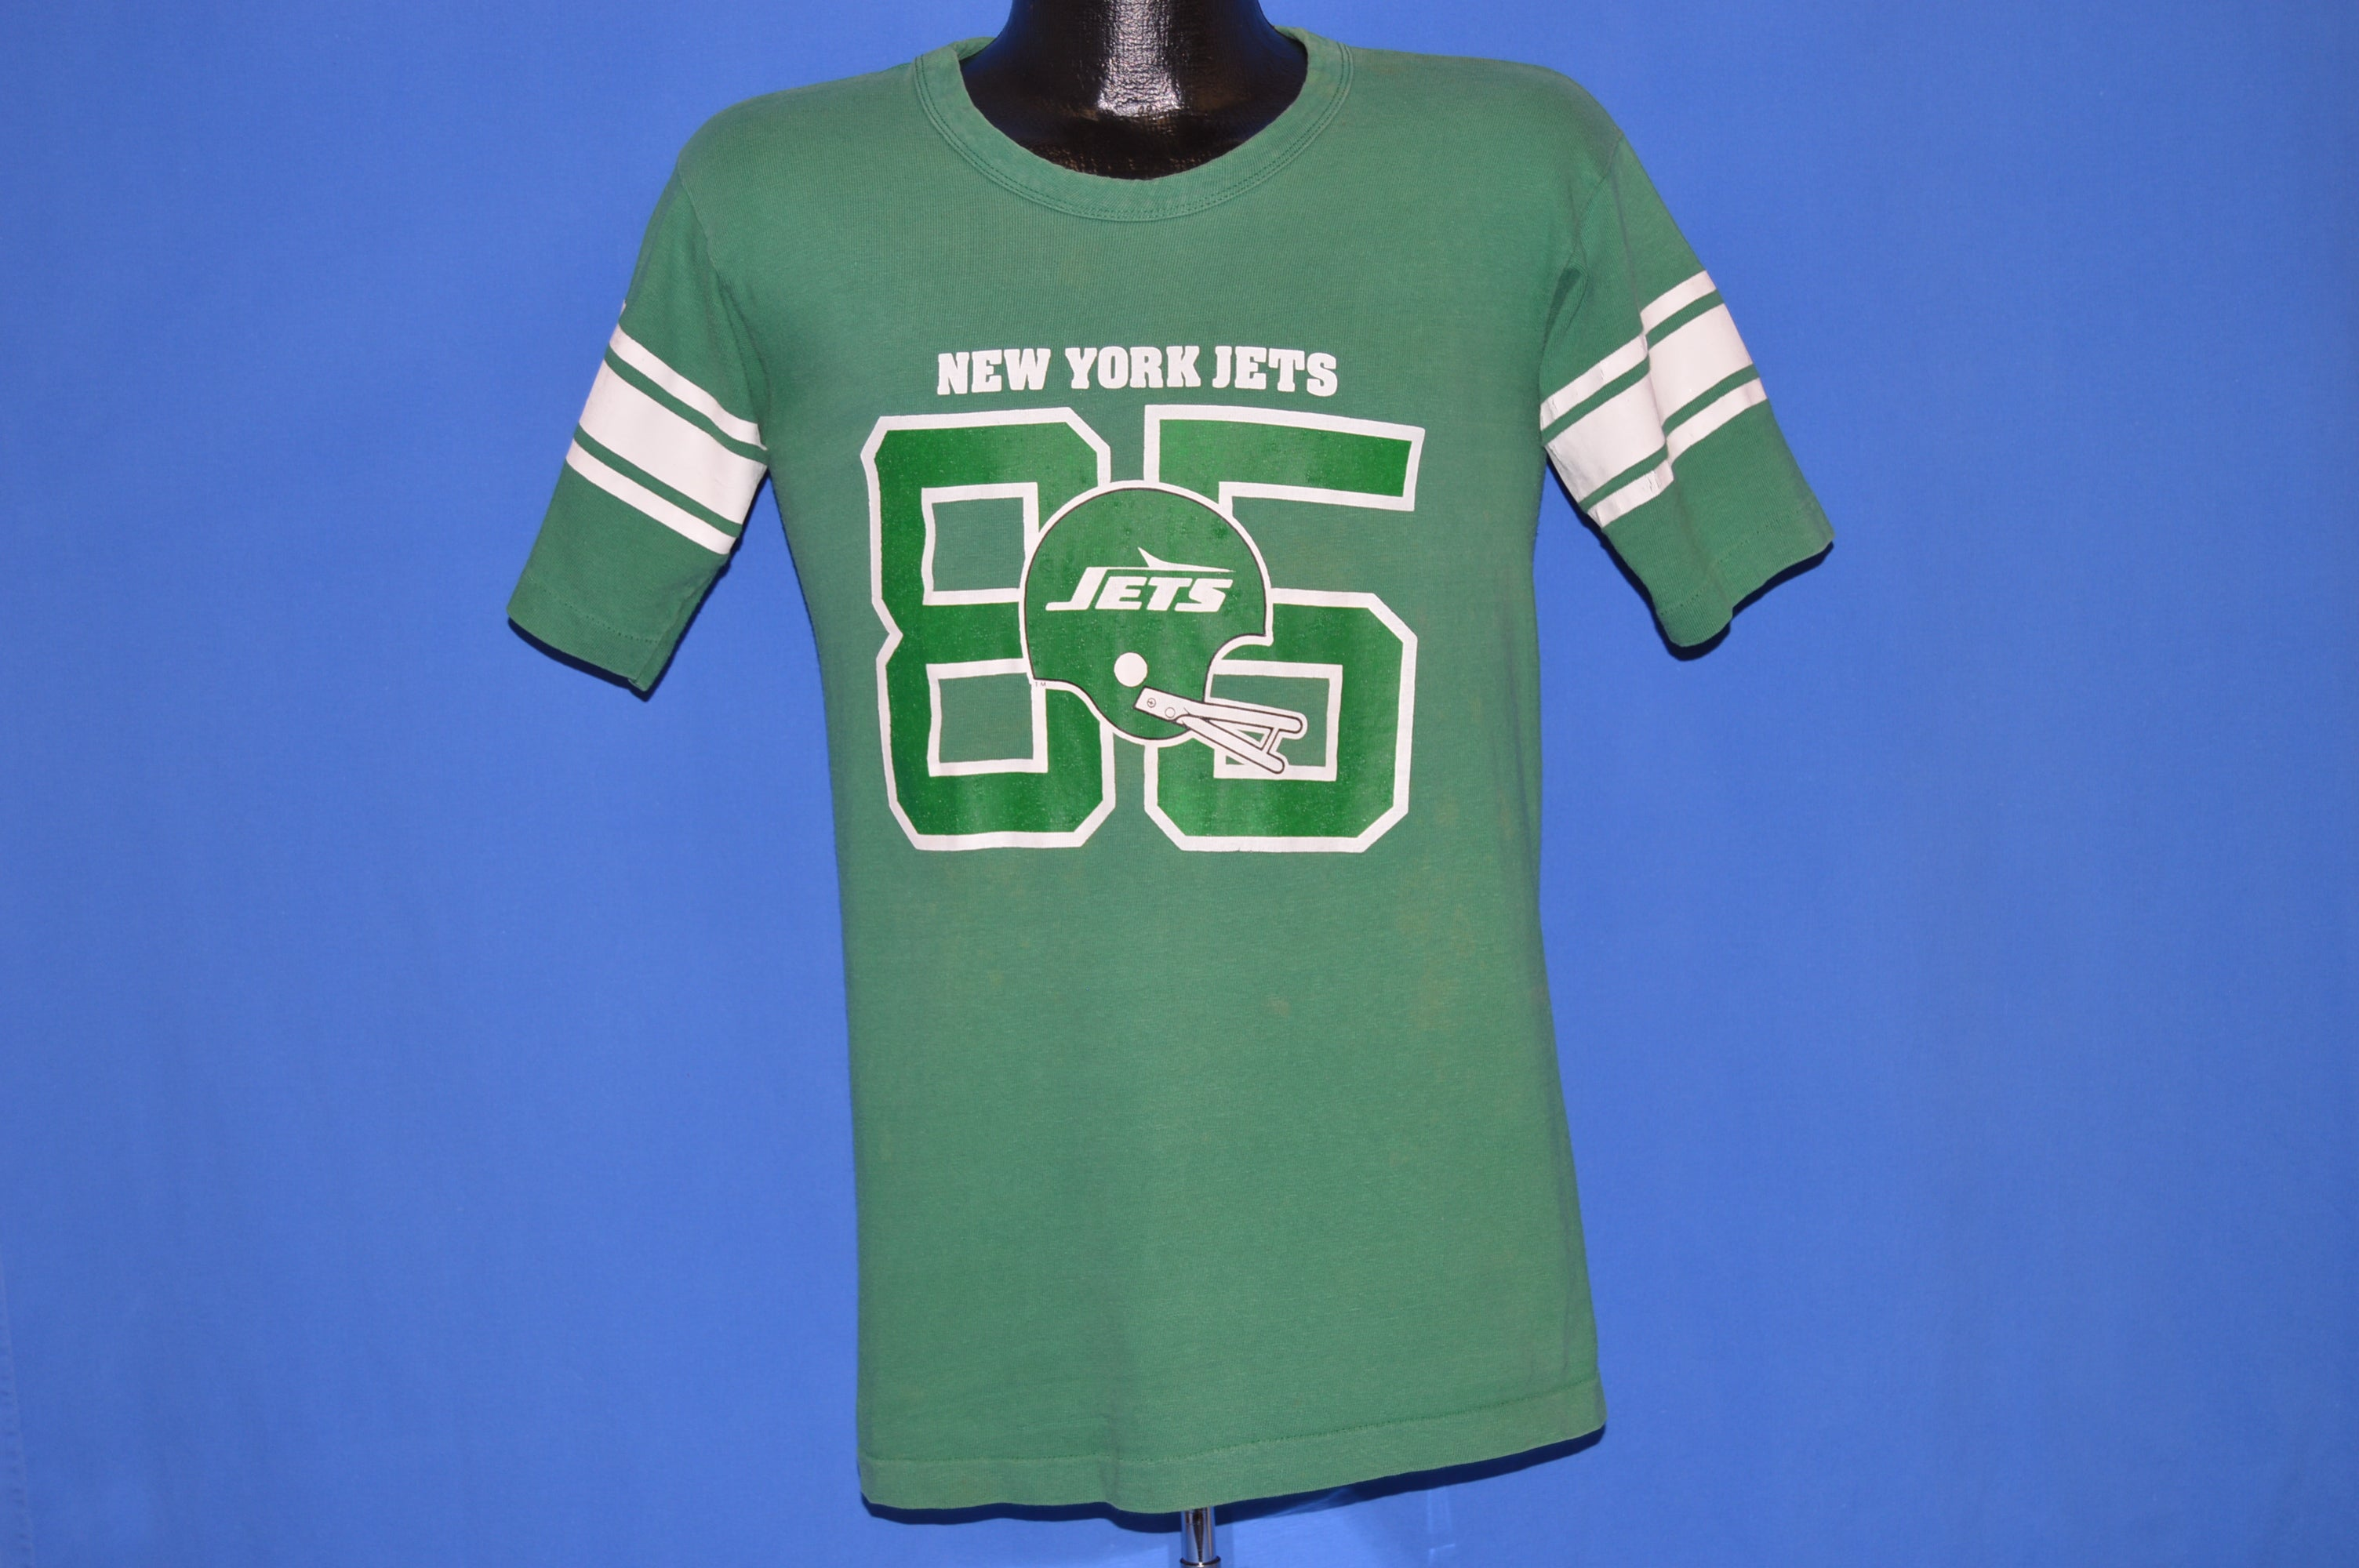 70s New York Jets #85 Wesley Walker Jersey t shirt Small The  hot sale